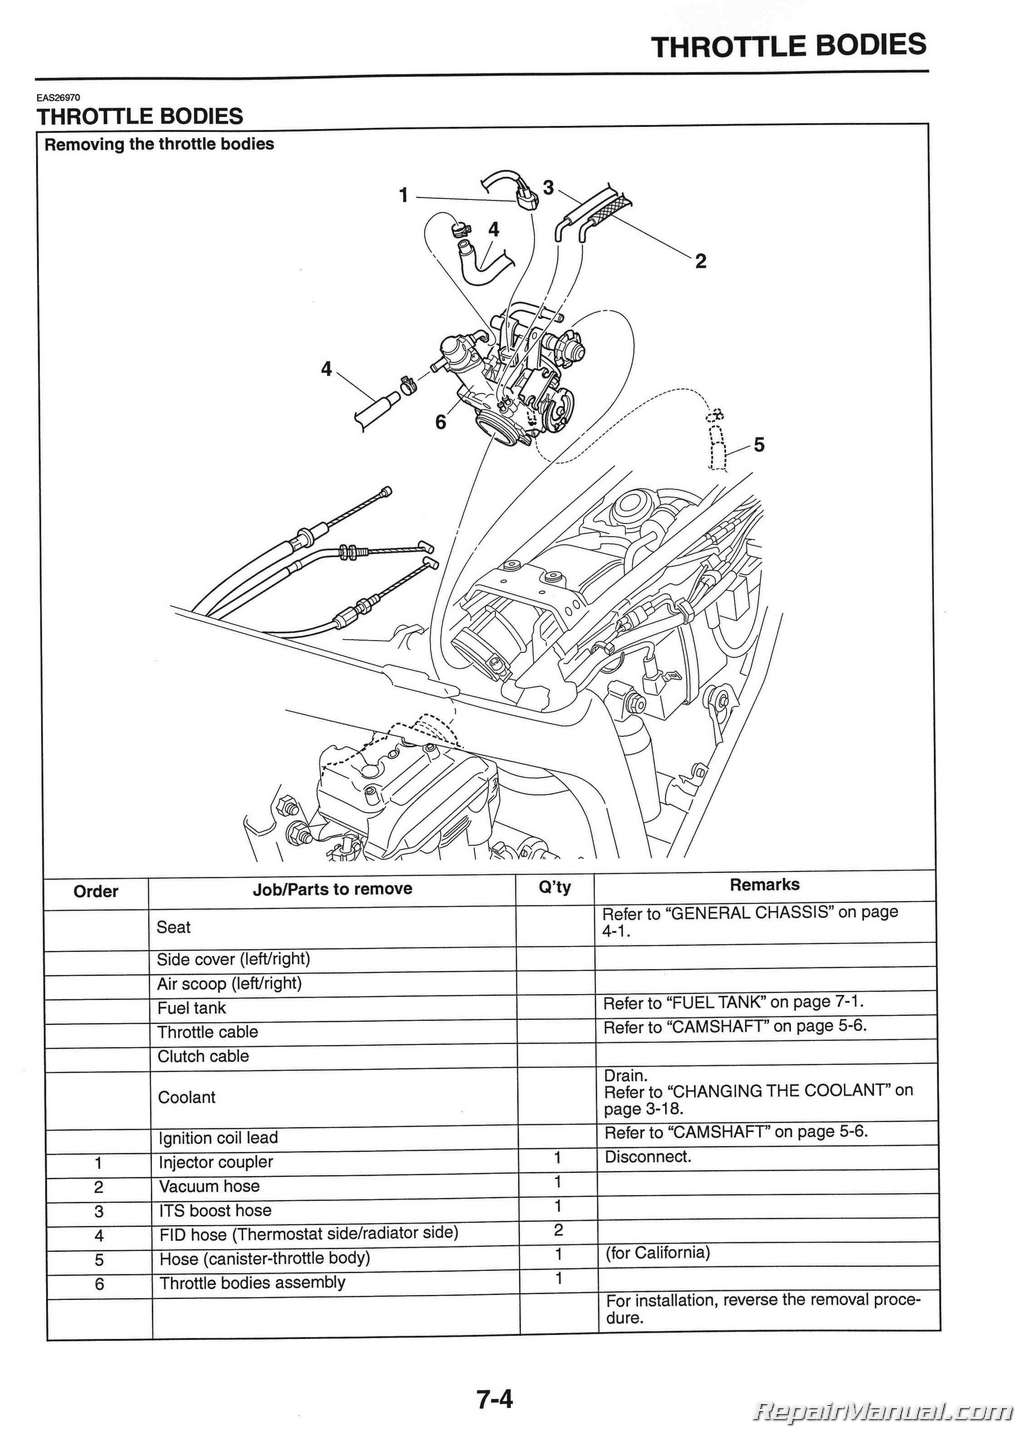 O2 Sensor Wiring Diagram Is The Stock That 2008 2015 Yamaha Wr250r Wr250x Motorcycle Service Manual